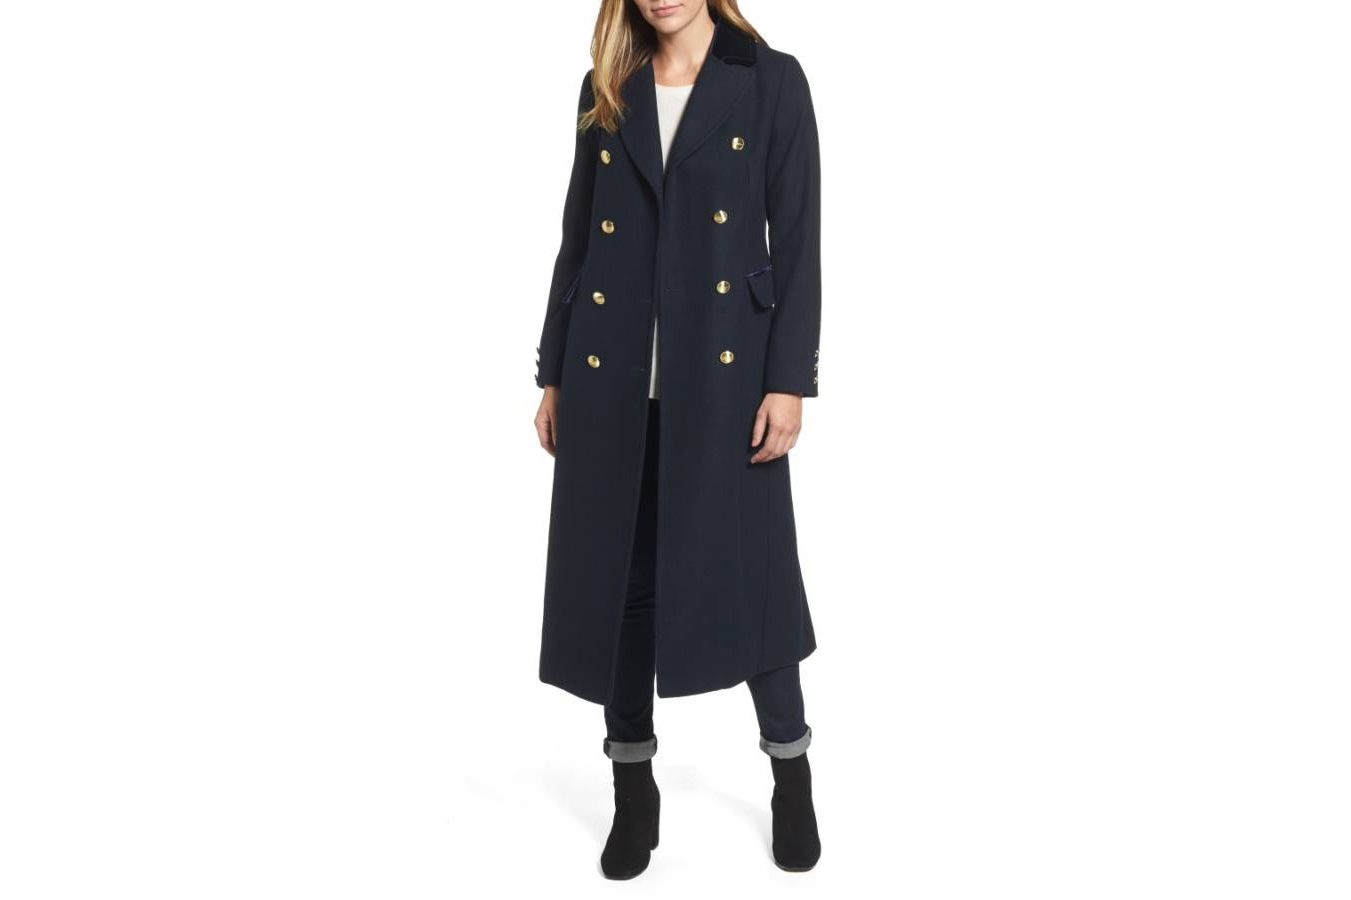 Laundry by Shelli Segal Wool Blend Military Coat